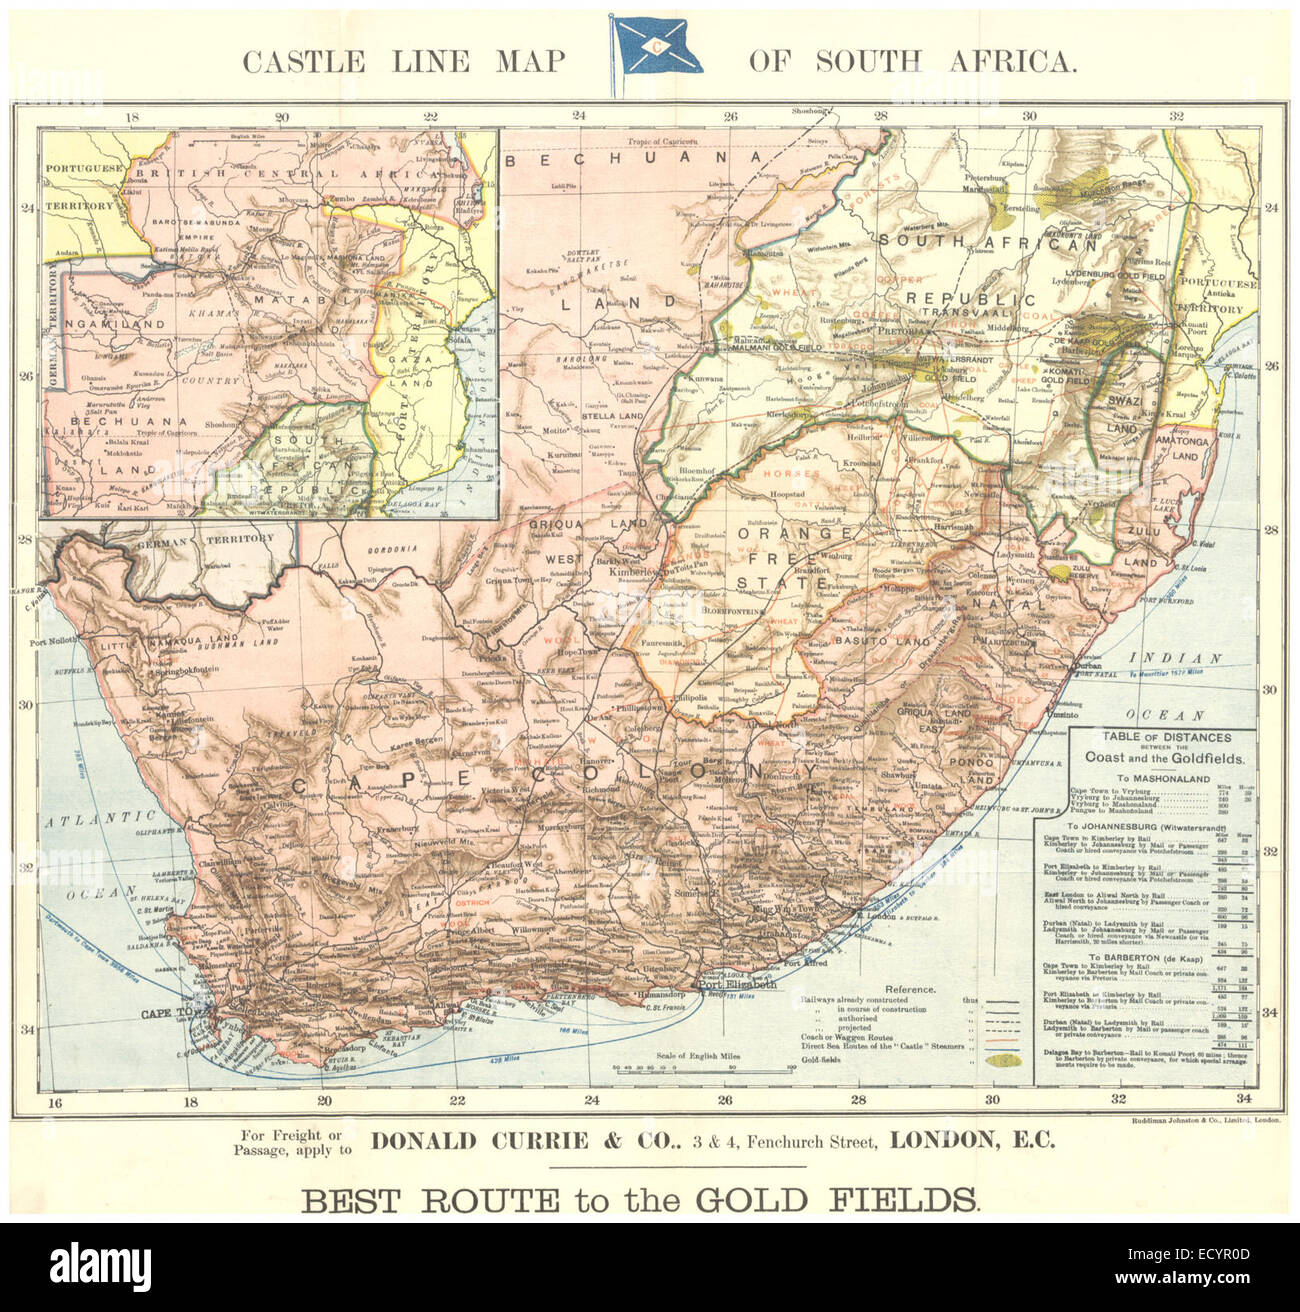 Gold In South Africa Map.Castle Line Map Of South Africa Best Route To Gold Fields